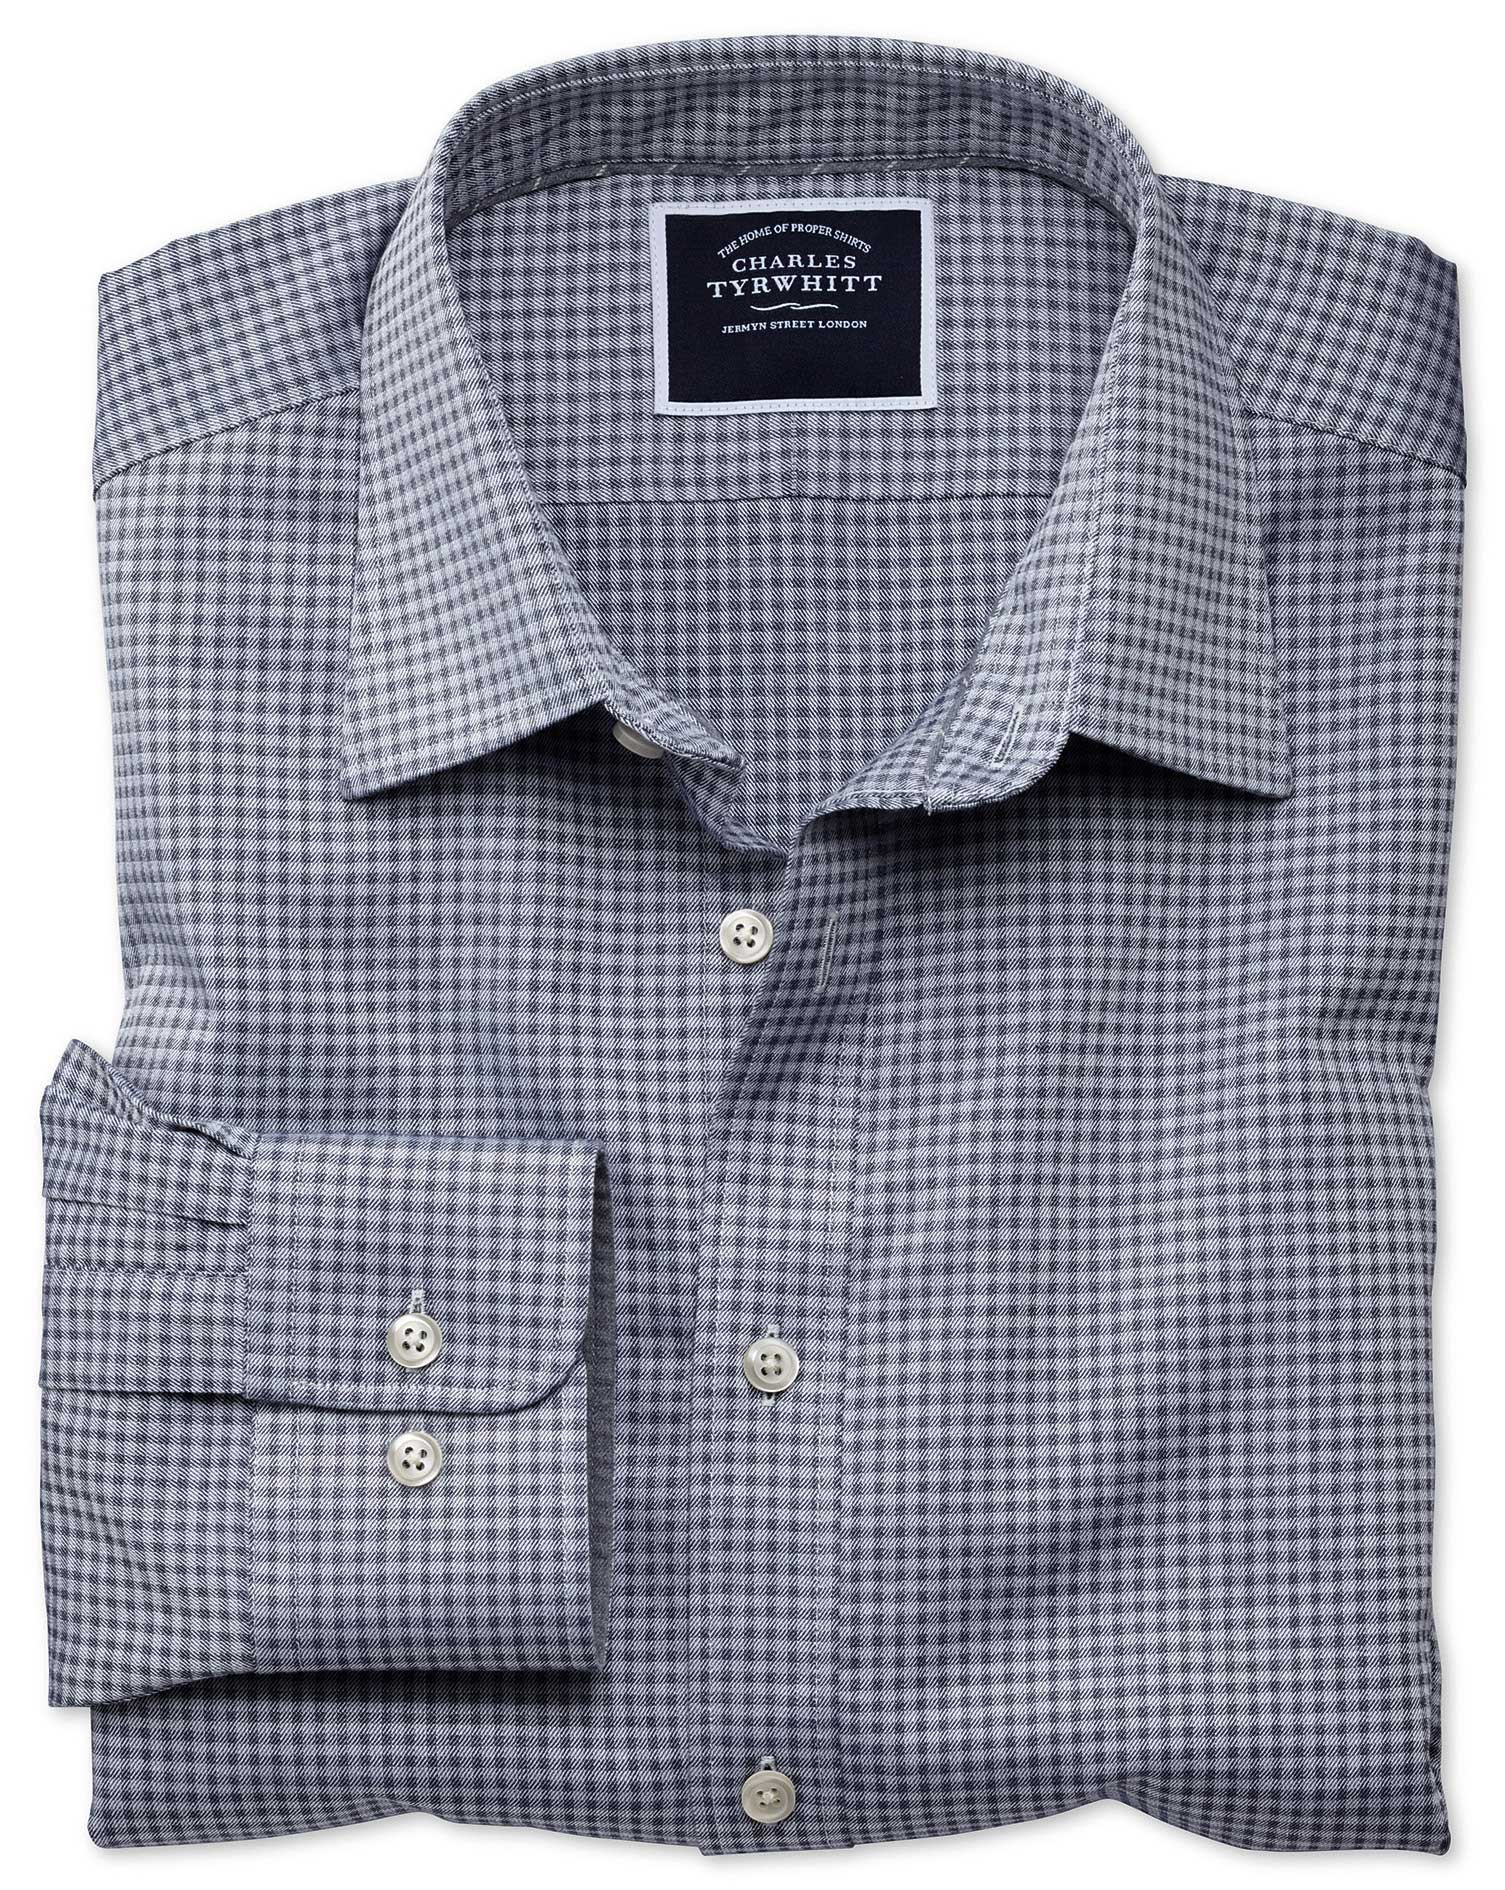 Slim Fit Blue and Grey Check Soft Textured Cotton Shirt Single Cuff Size XXL by Charles Tyrwhitt